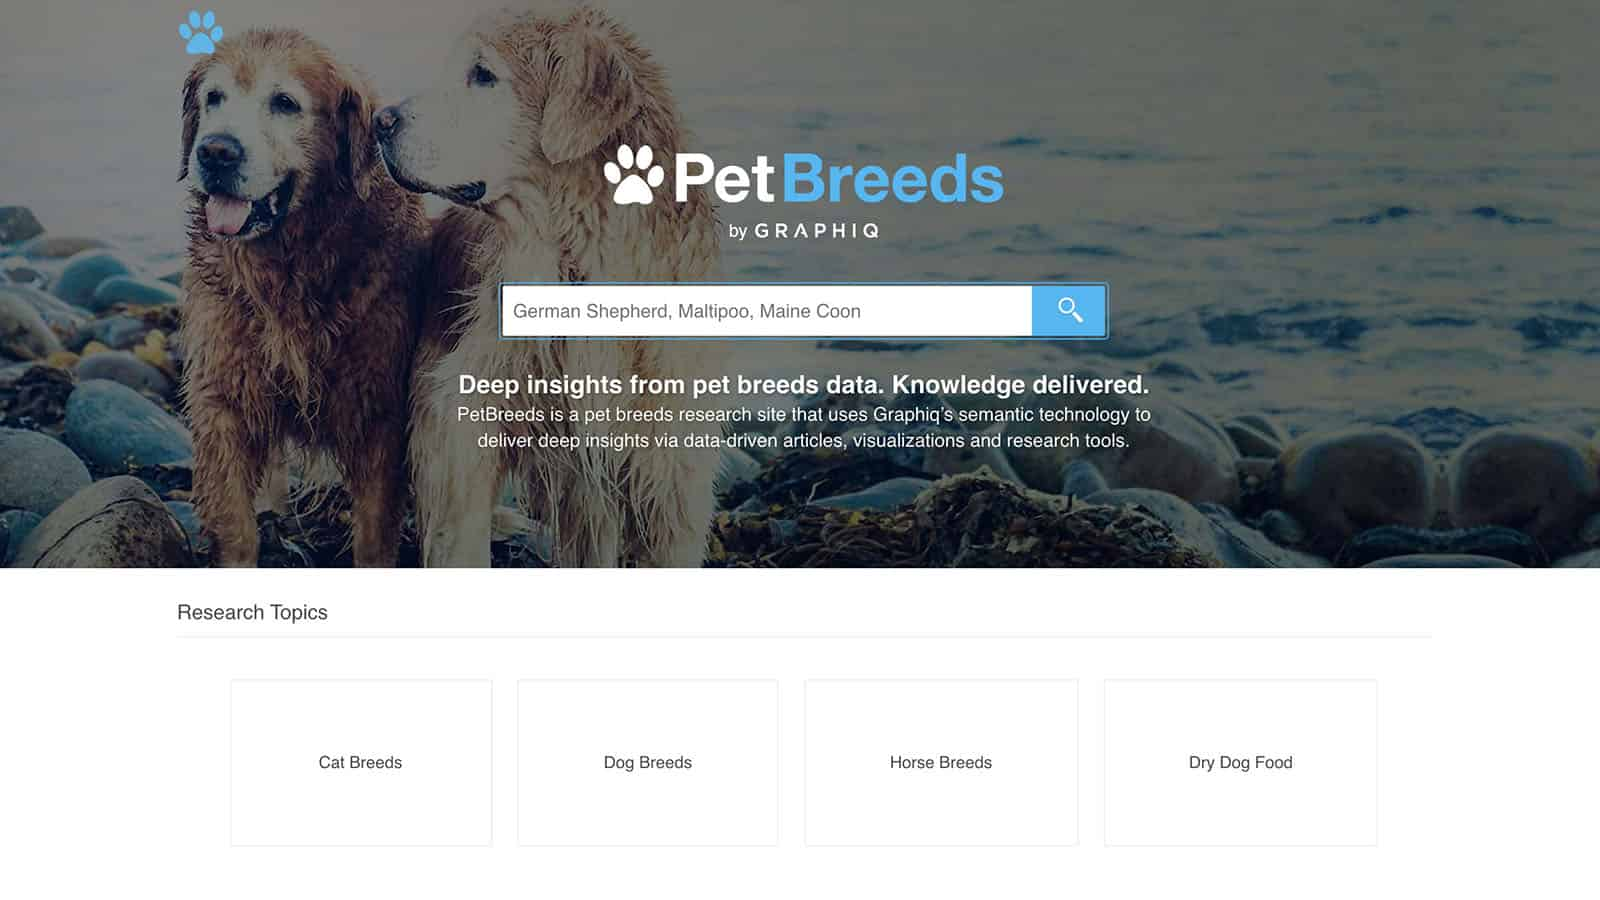 The Homepage of PetBreeds.com when it was live